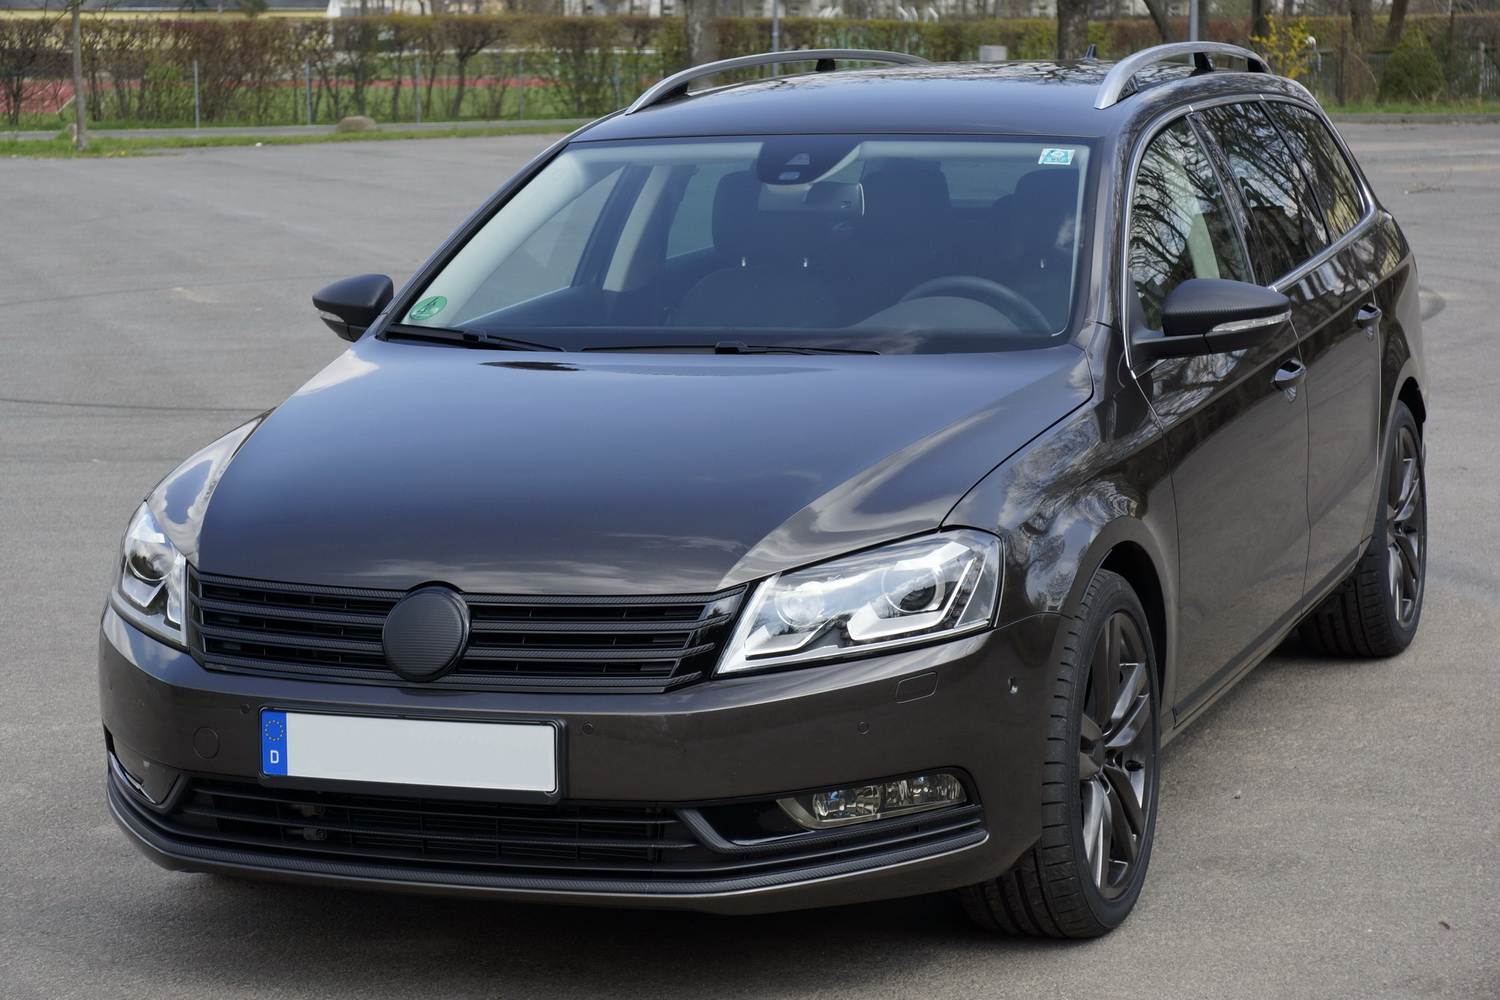 2012 volkswagen passat b7 pictures information and specs auto. Black Bedroom Furniture Sets. Home Design Ideas